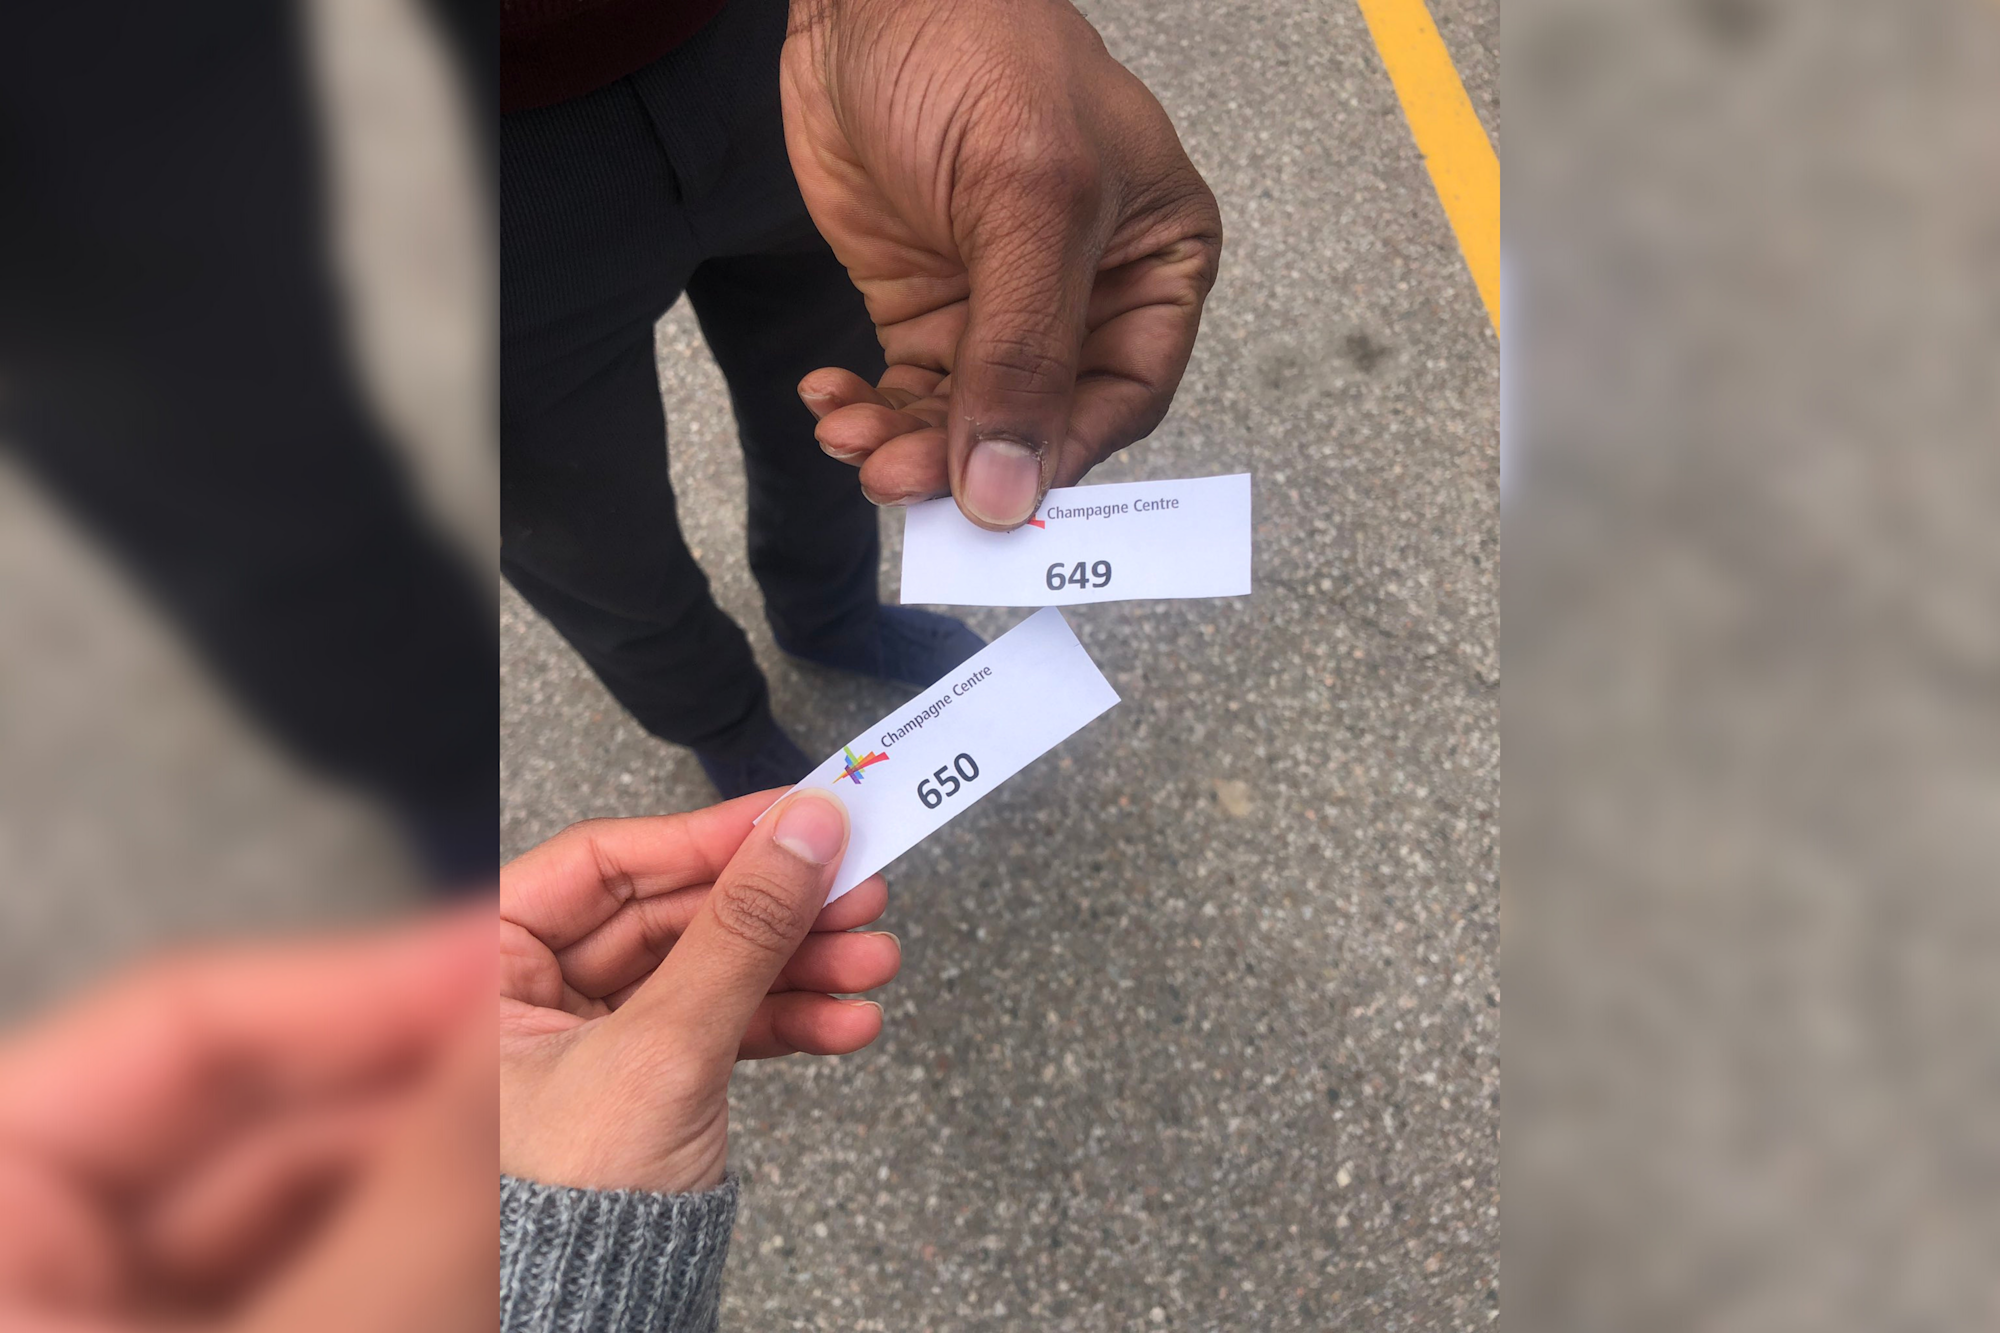 'We need to depend on each other': Toronto woman convinces Uber driver to stop everything, get COVID-19 vaccine with her